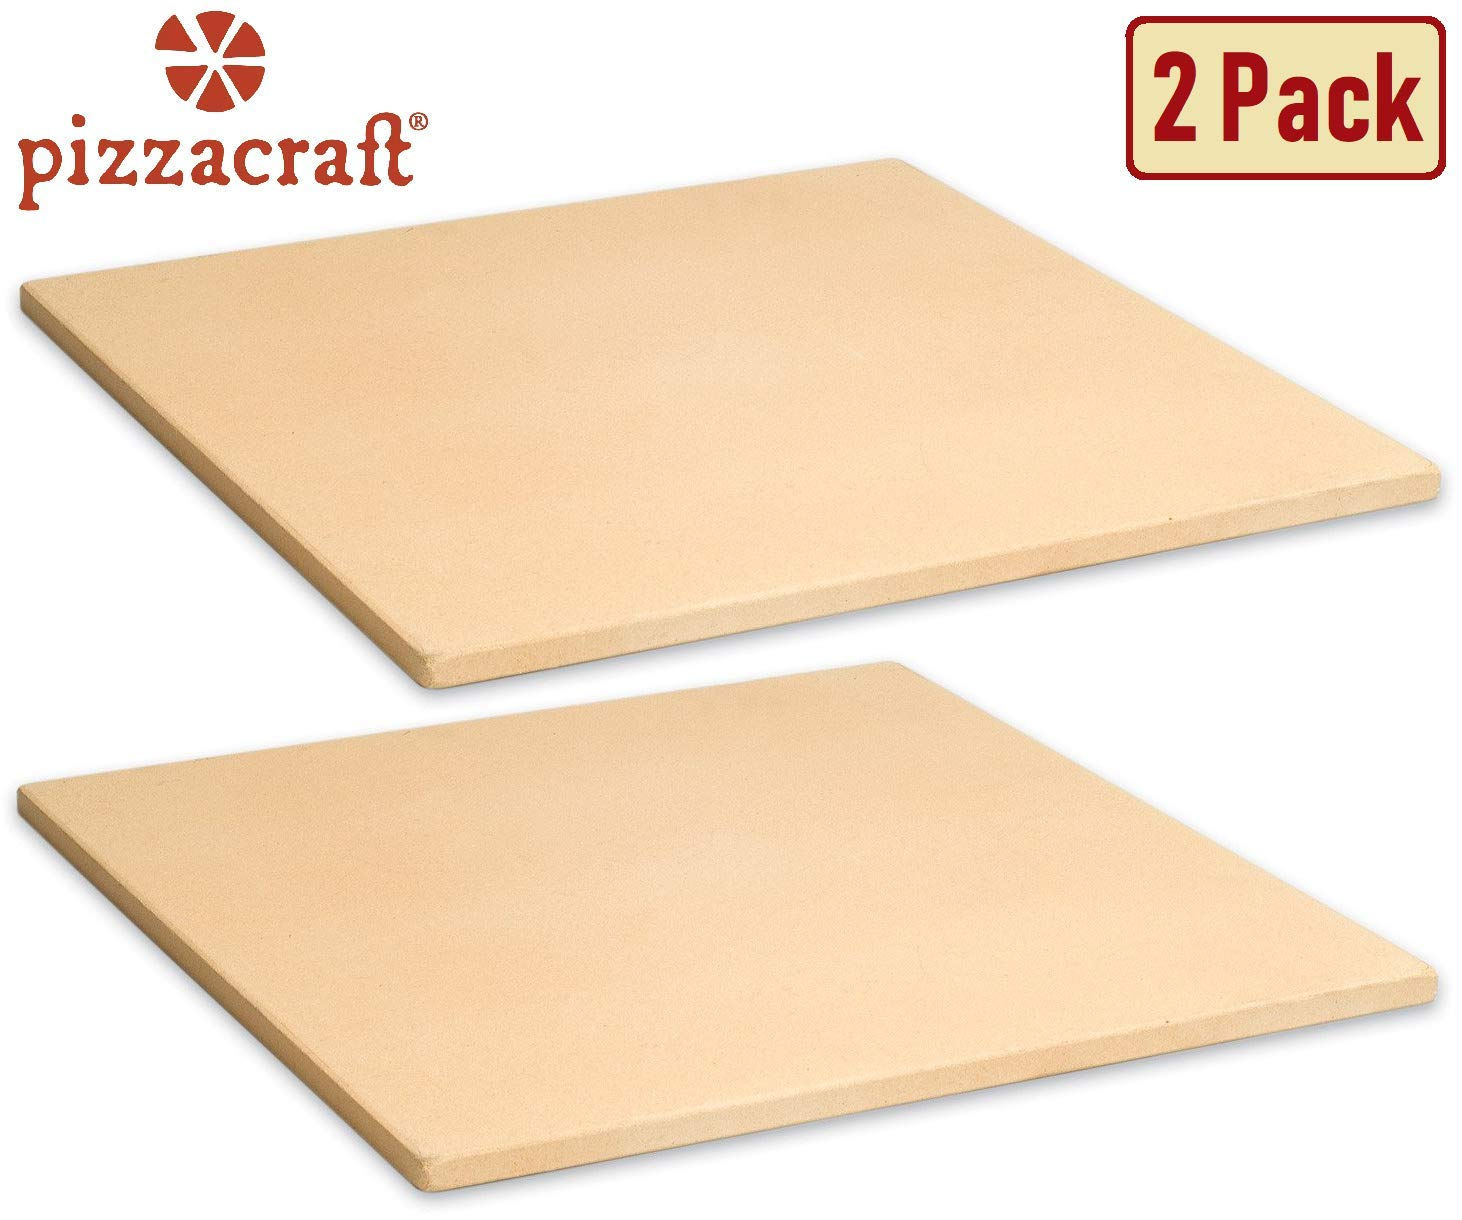 Pizzacraft 15'' Square ThermaBond Baking/Pizza Stone - For Oven or Grill, 2 Pack by Pizzacraft